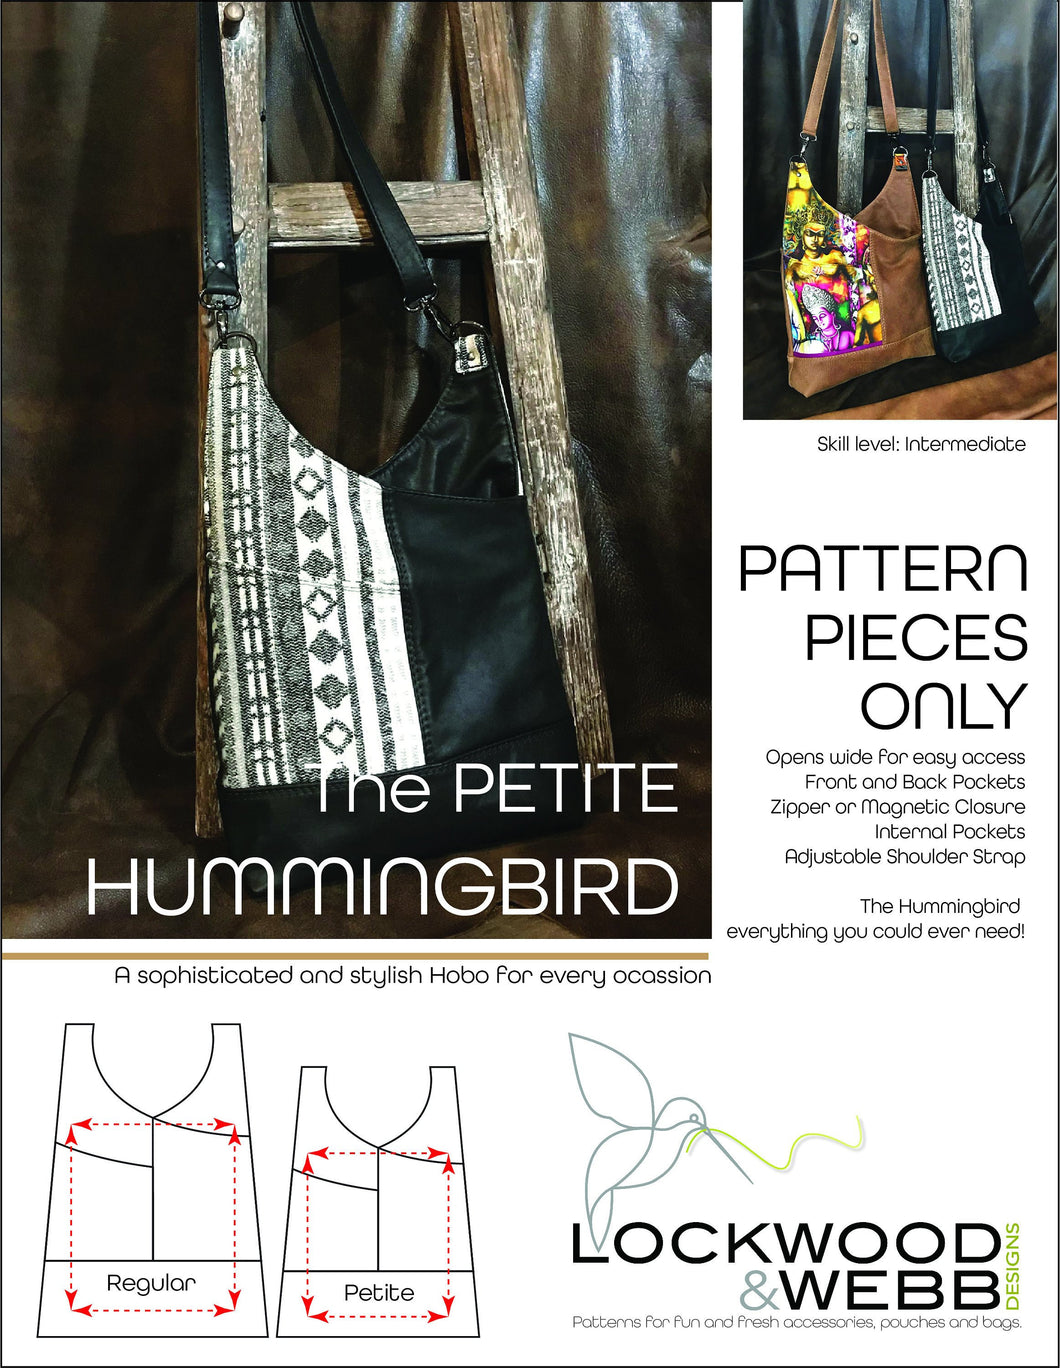 The Hummingbird Hobo PETITE - PATTERN PIECES Only